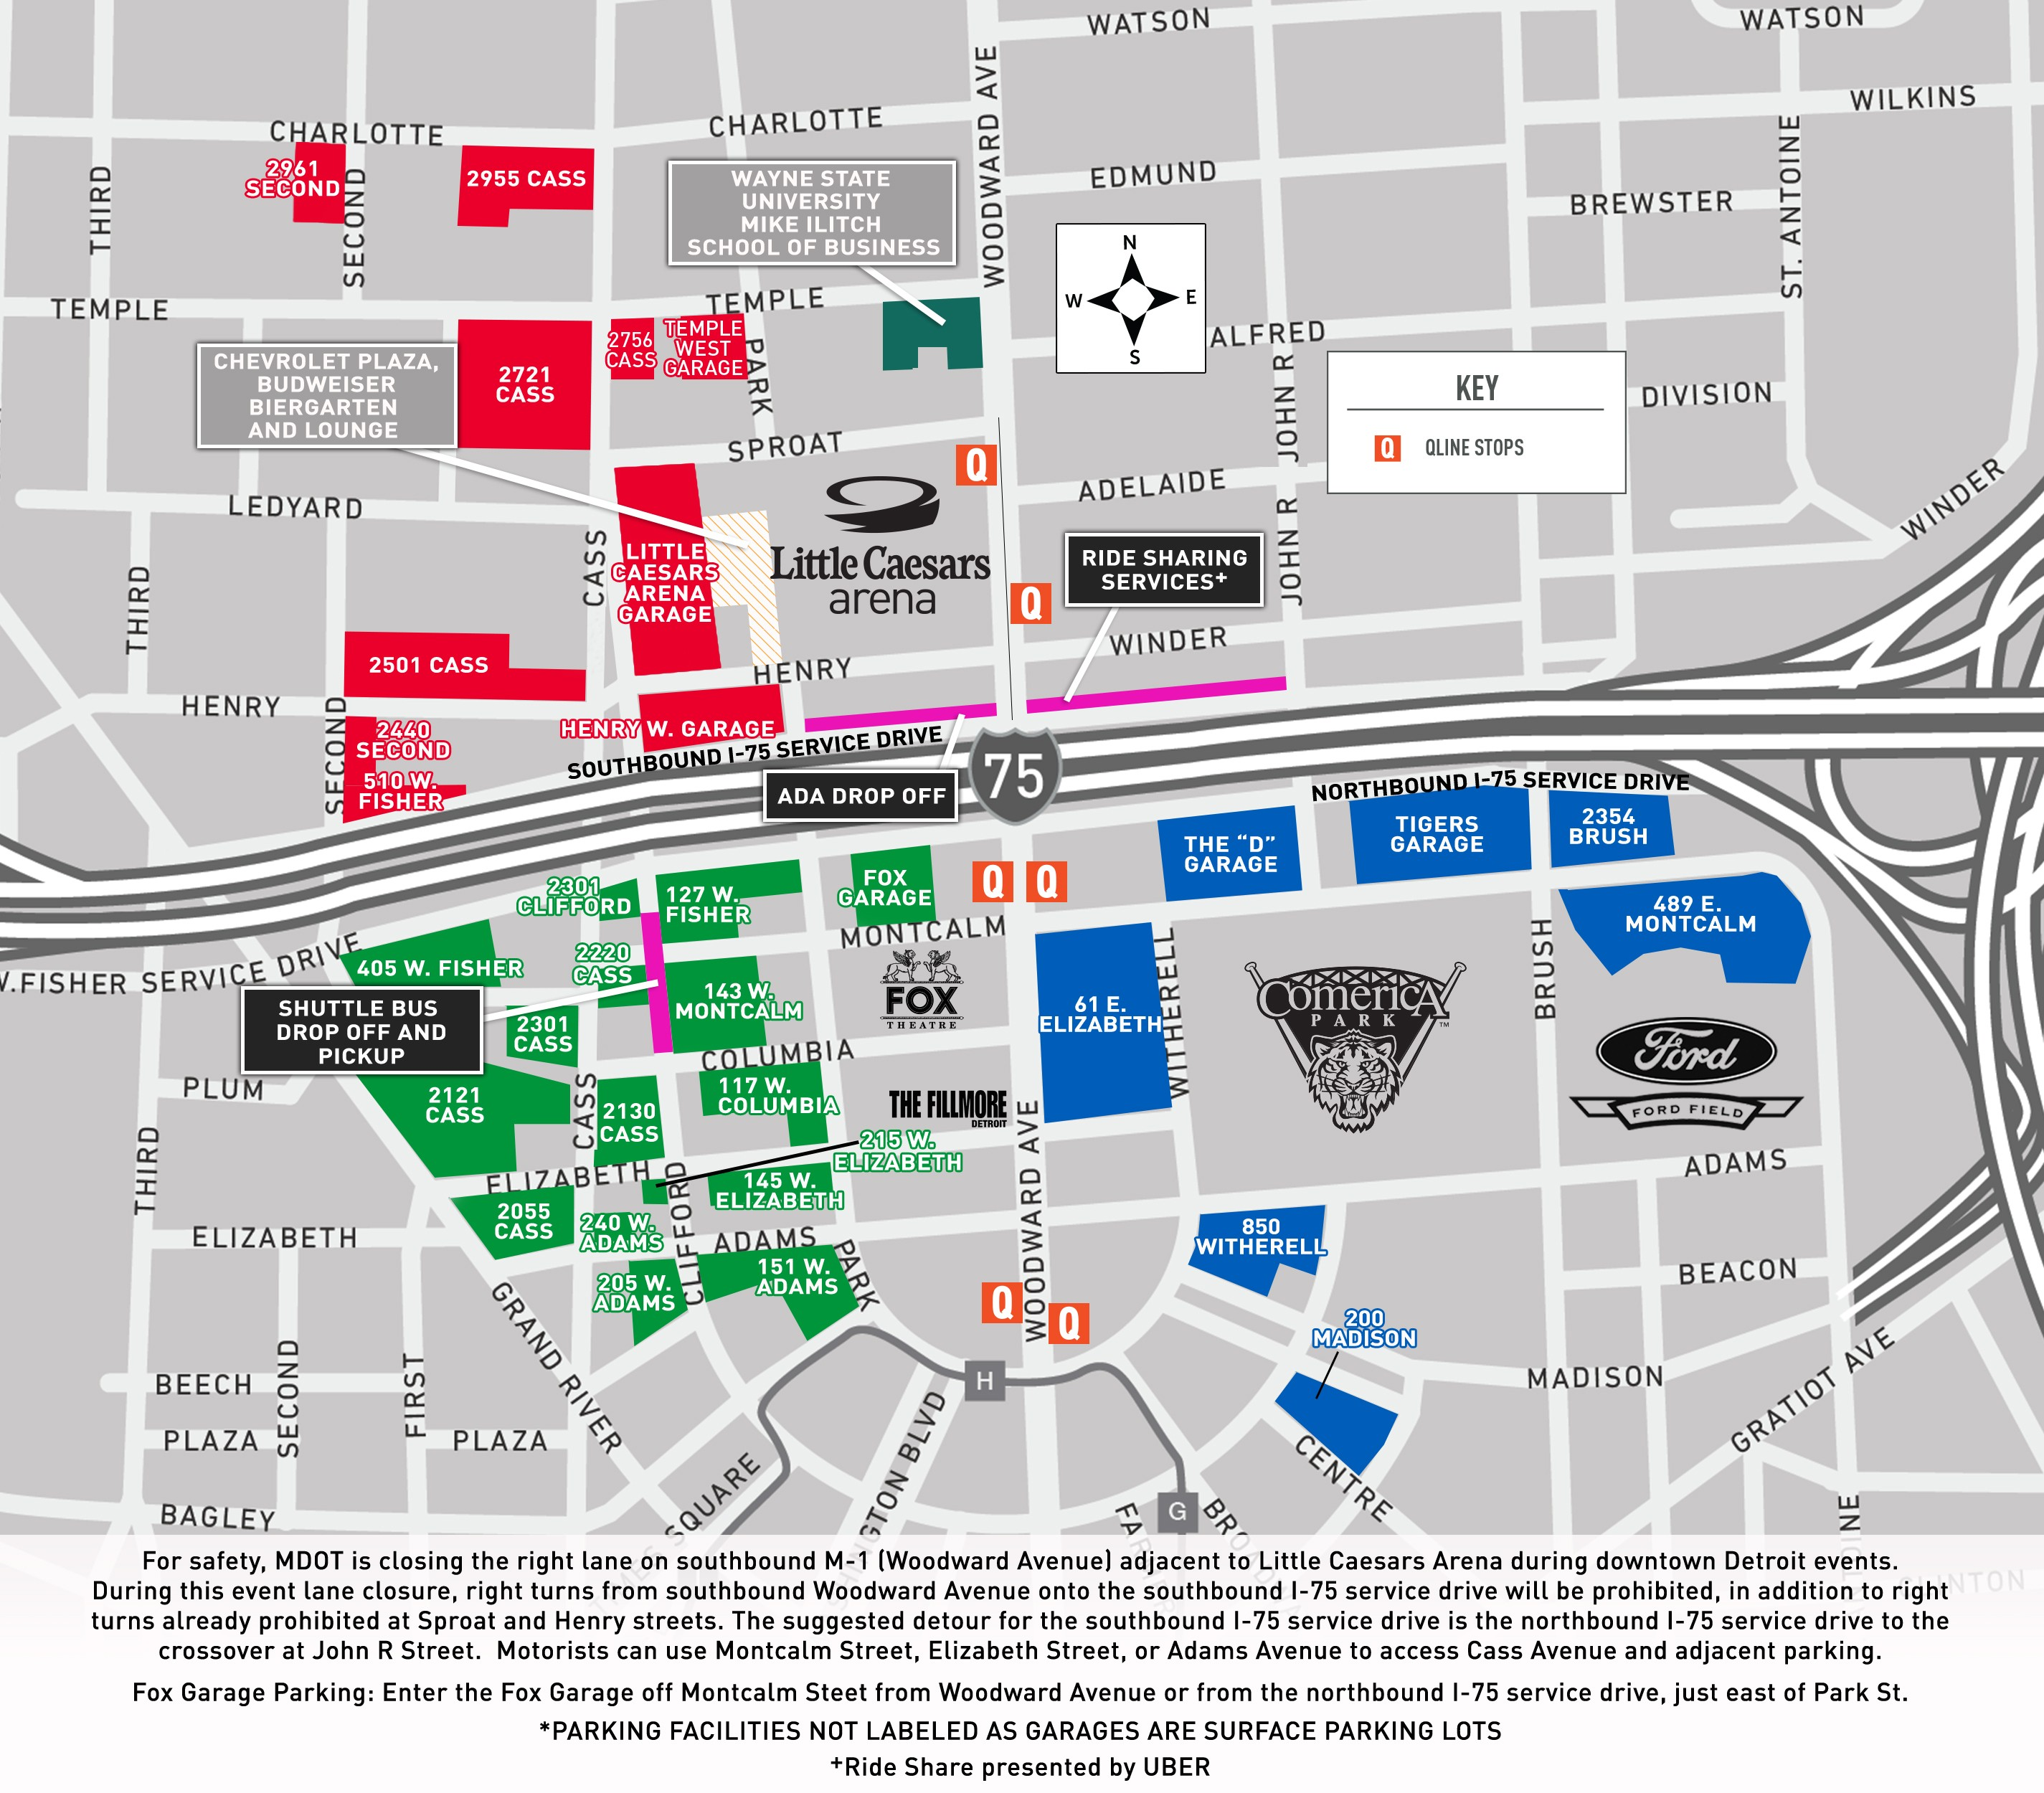 Little Caesars Arena Parking Lots, Maps and Directions